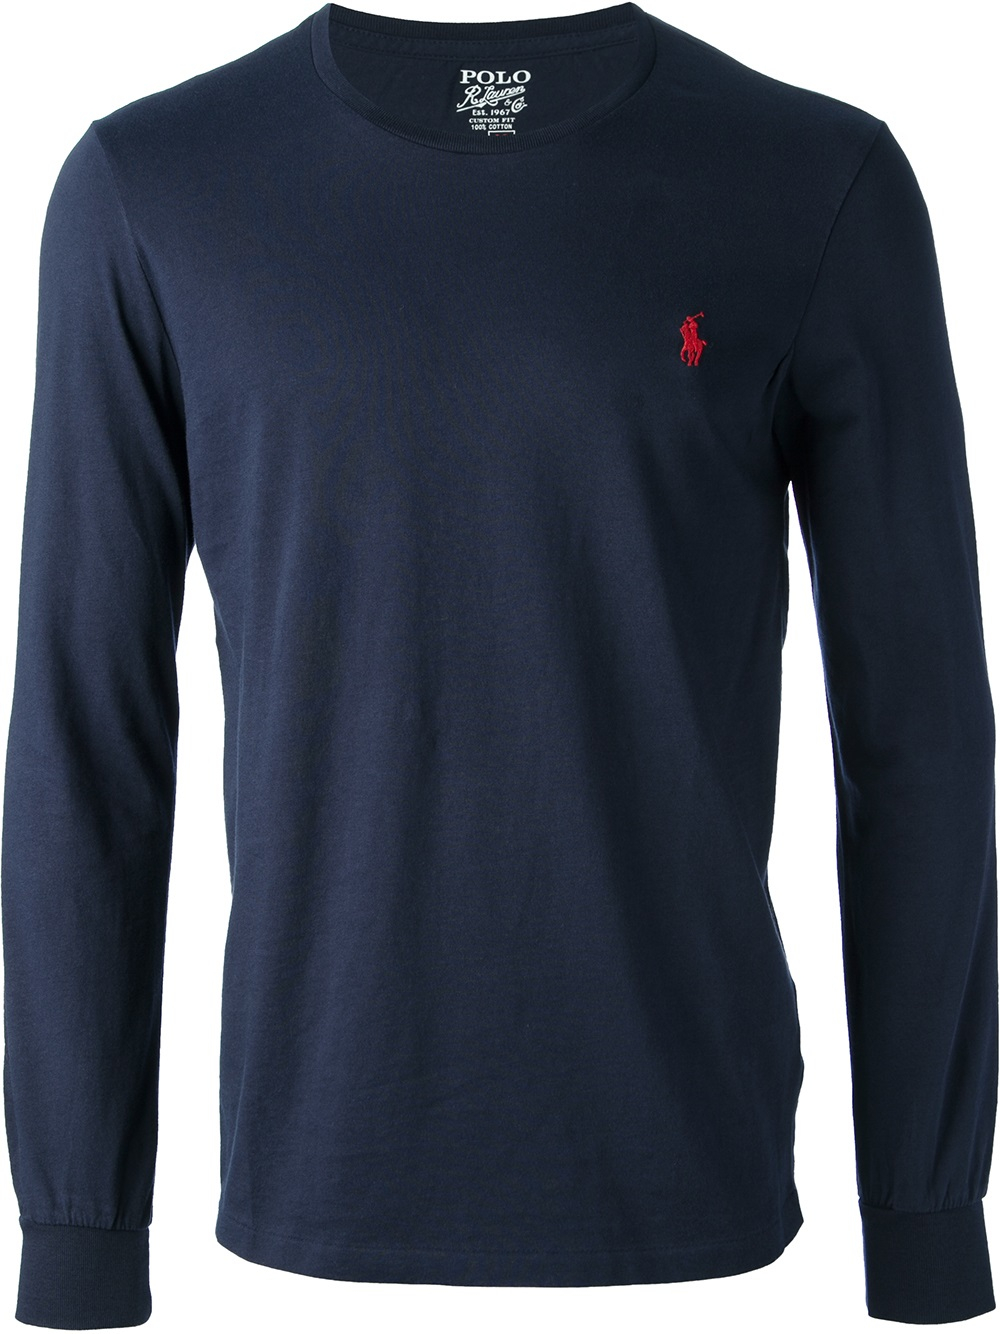 Polo Ralph Lauren long sleeved shirt - Blue Deals Discount Free Shipping New Styles Online Low Cost cCxz39